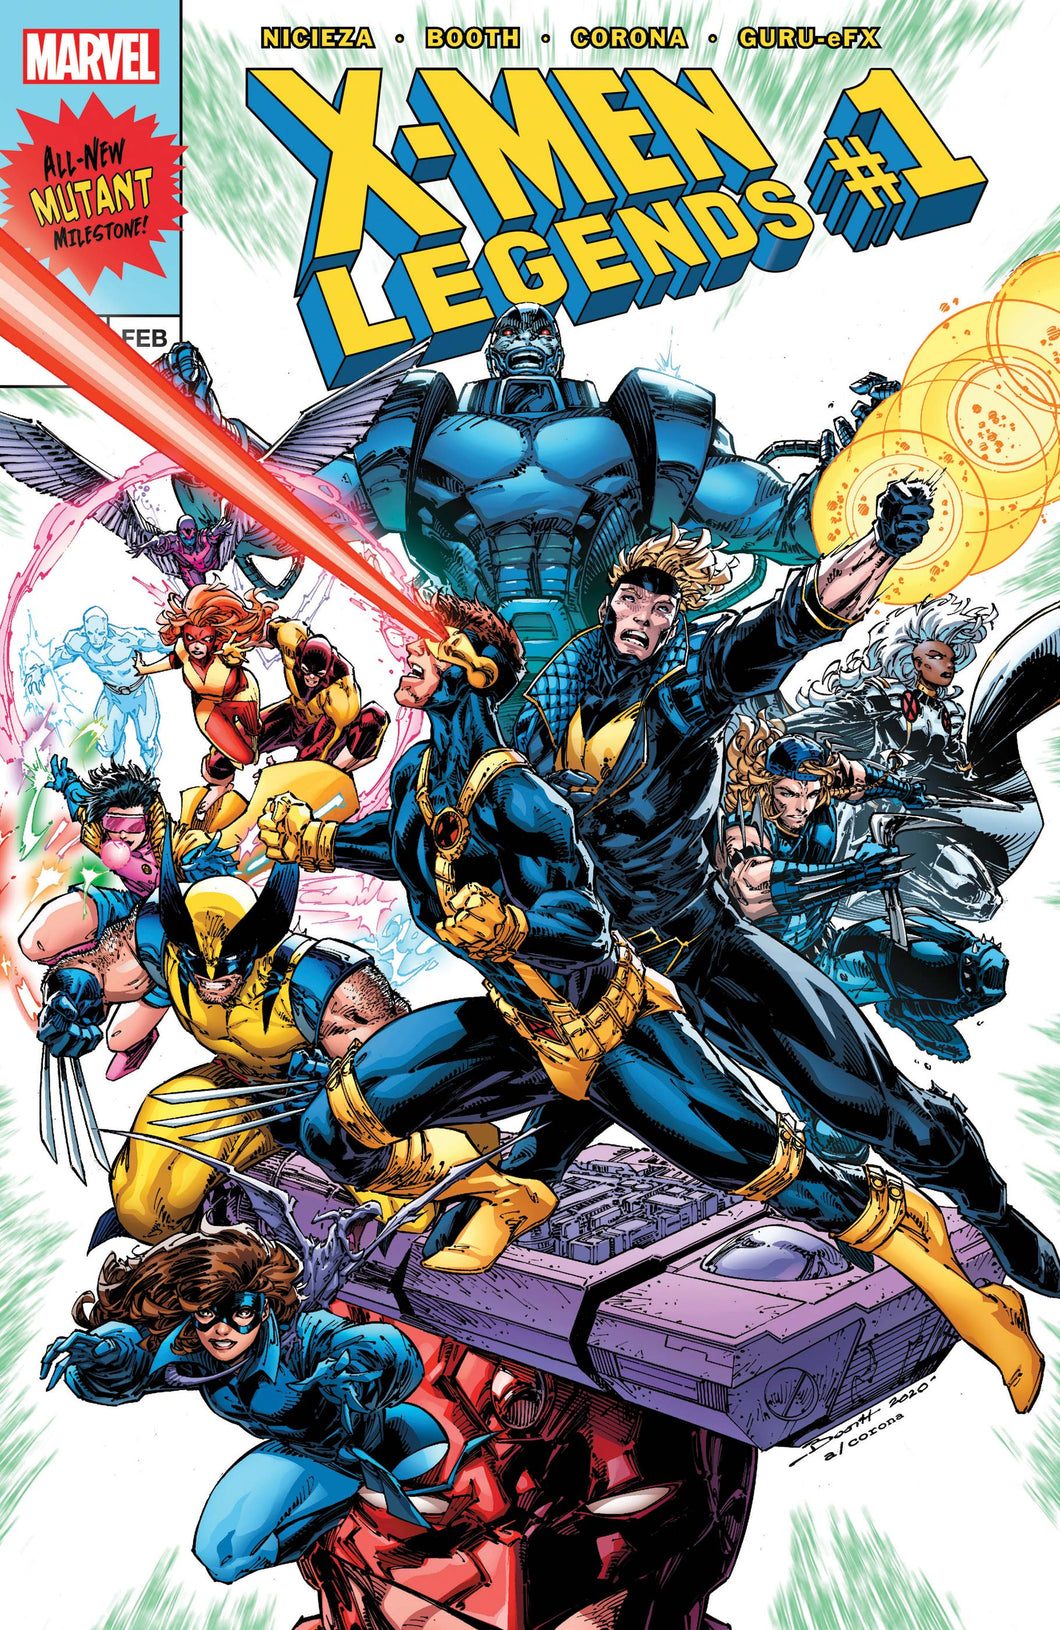 Comic - X-men Legends #1